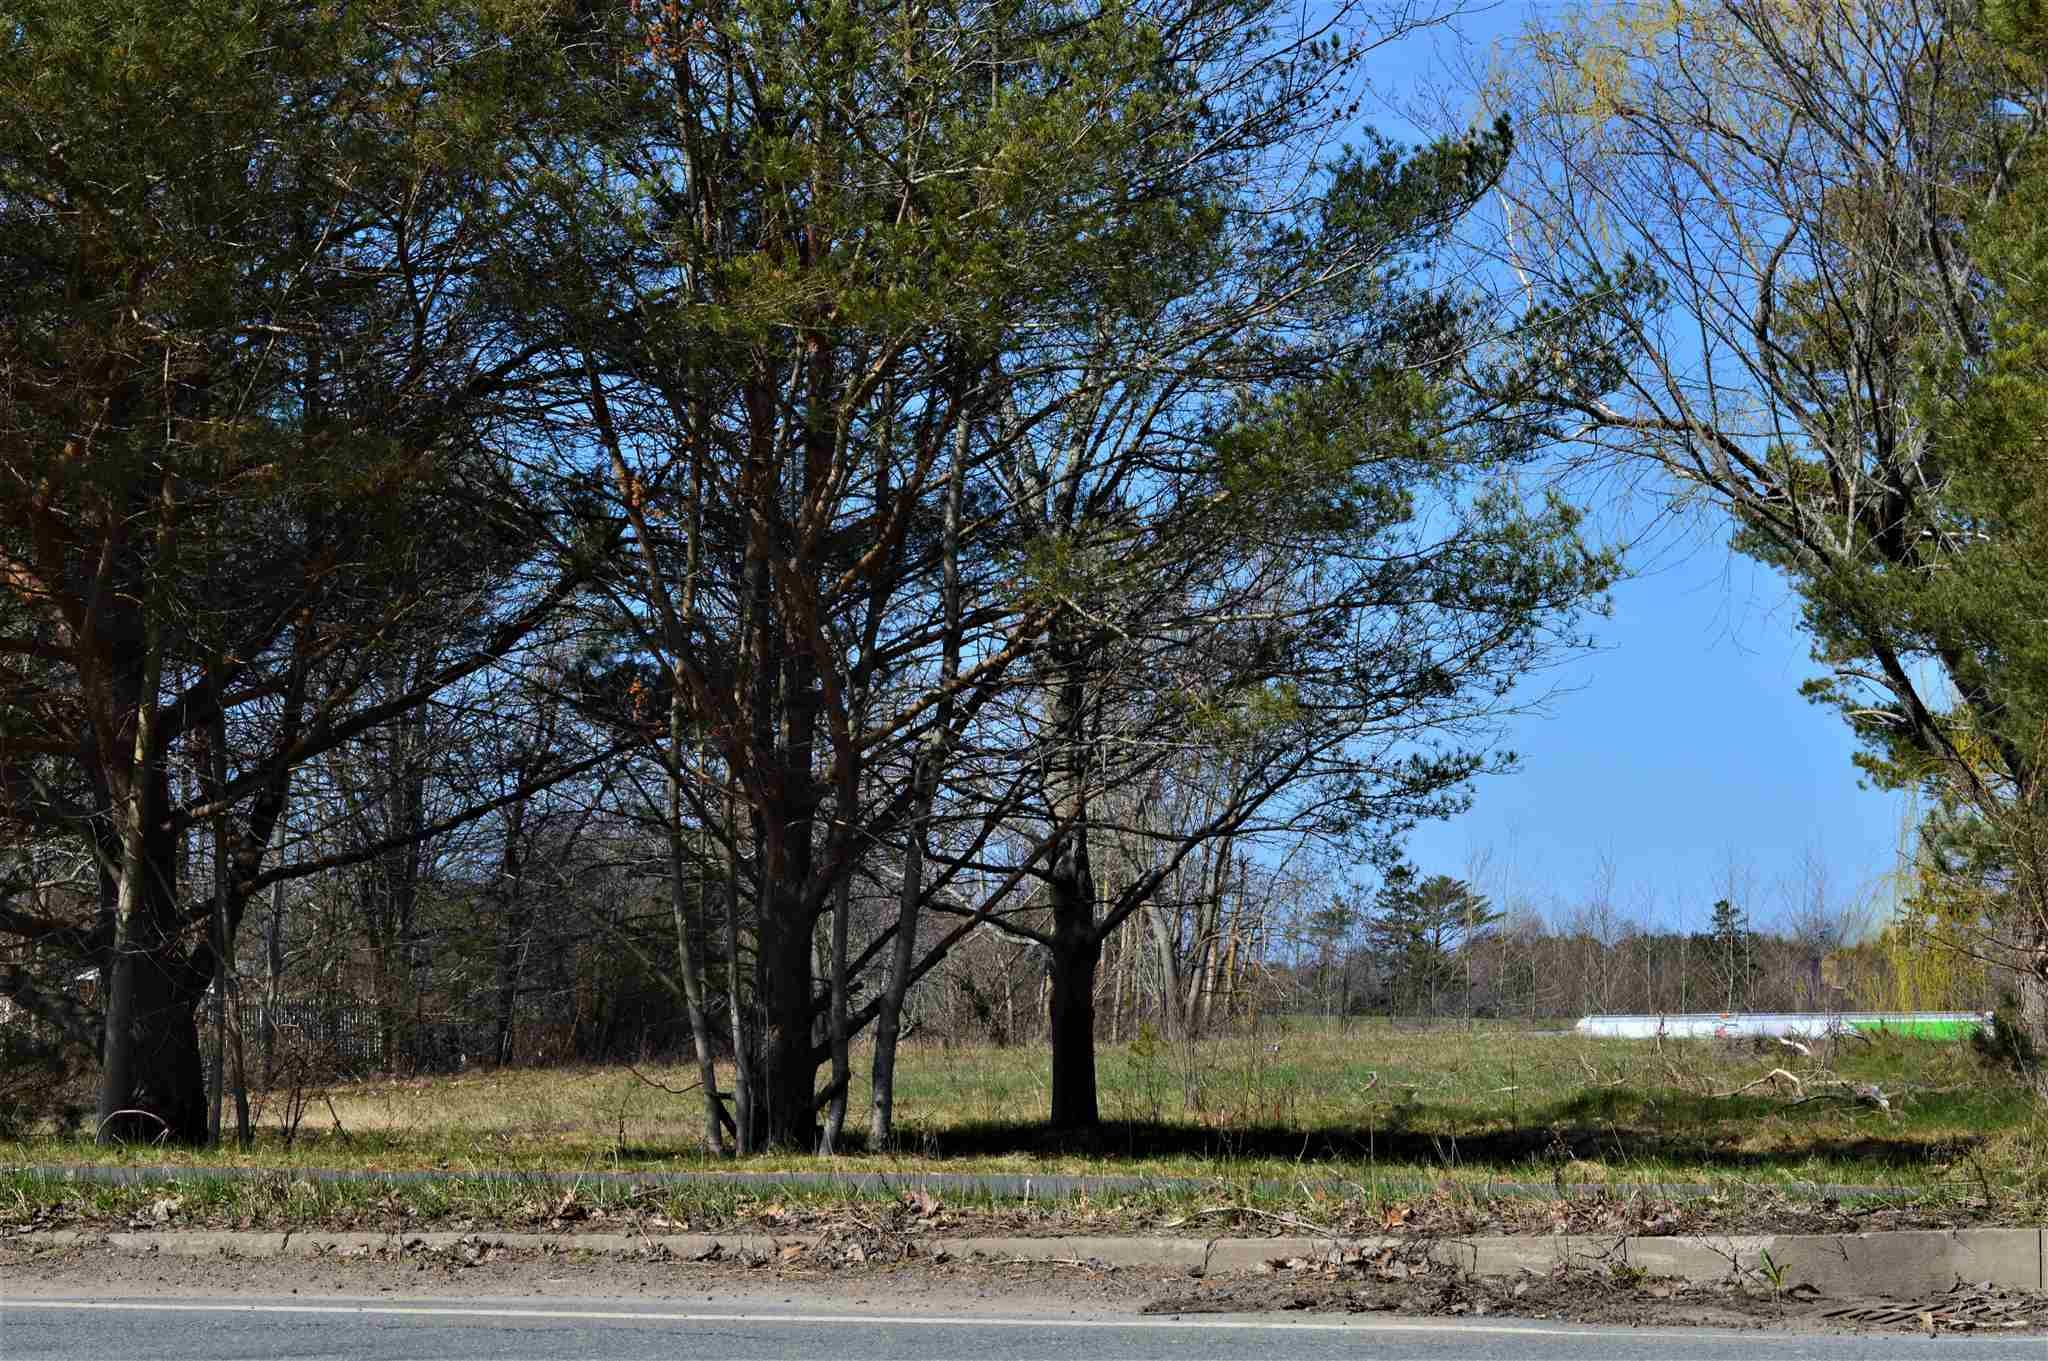 Main Photo: 747-751 Cambridge Road in Cambridge: 404-Kings County Vacant Land for sale (Annapolis Valley)  : MLS®# 202109574